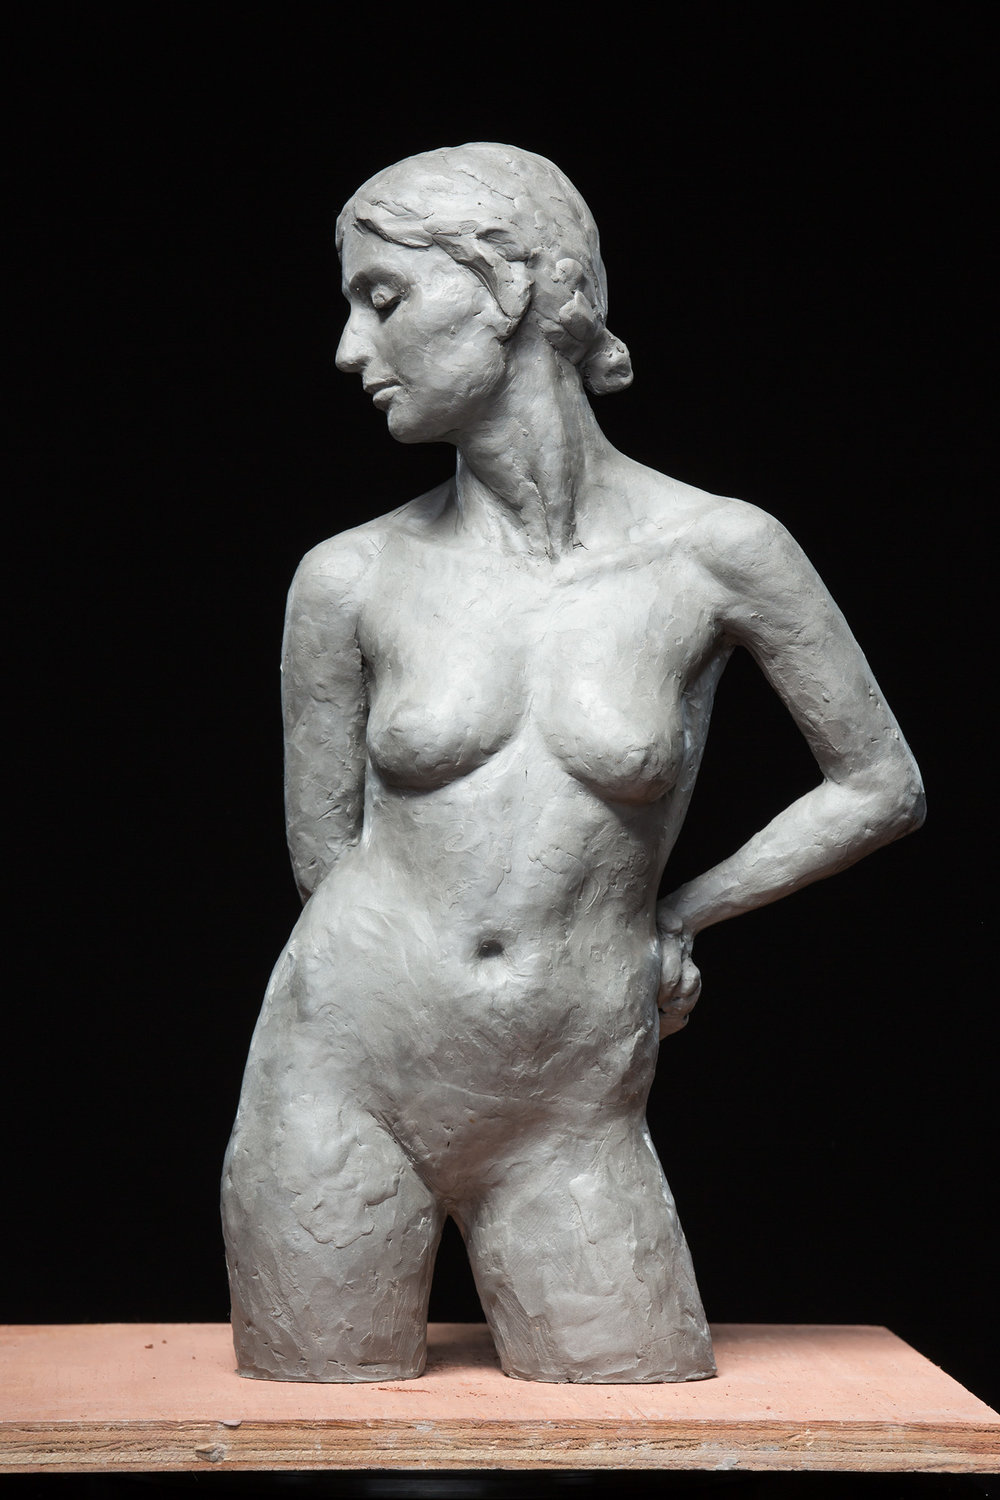 melanie-clay-sculptures-2016-21.jpg